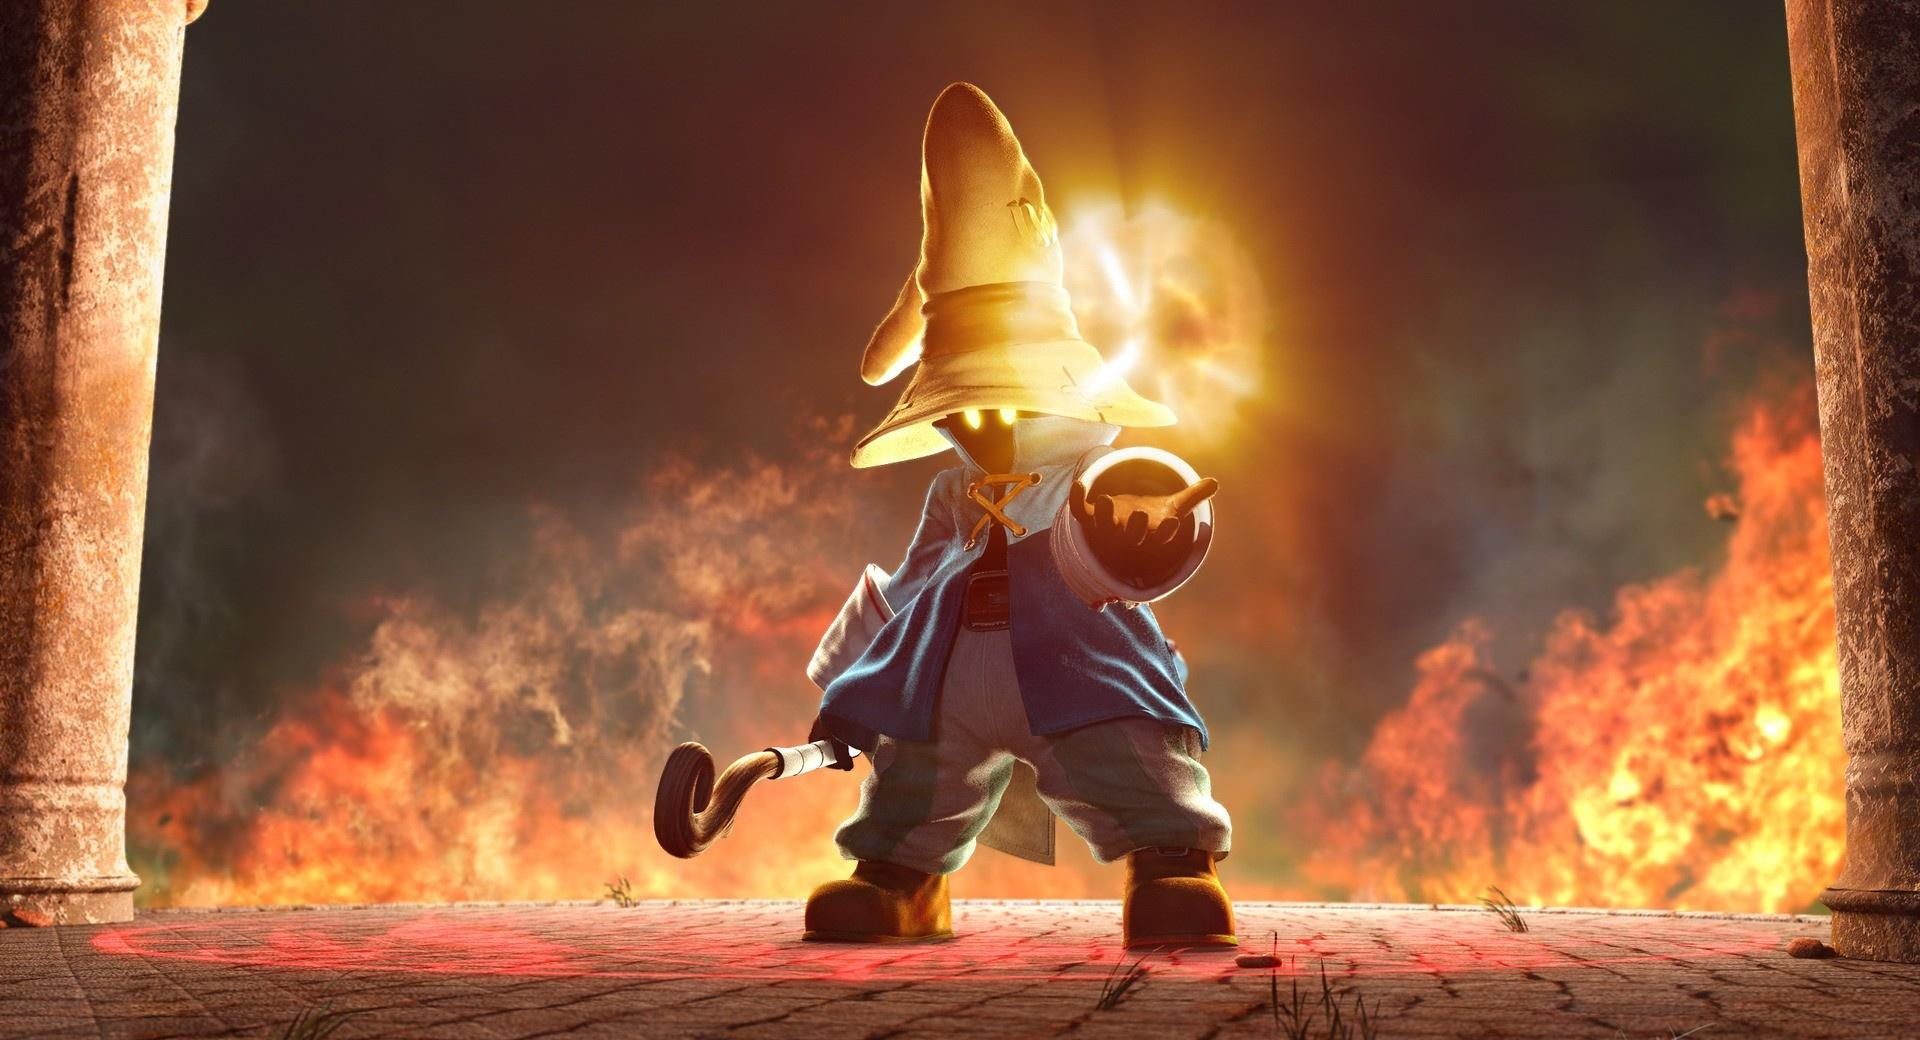 Final Fantasy IX Art wallpapers HD quality